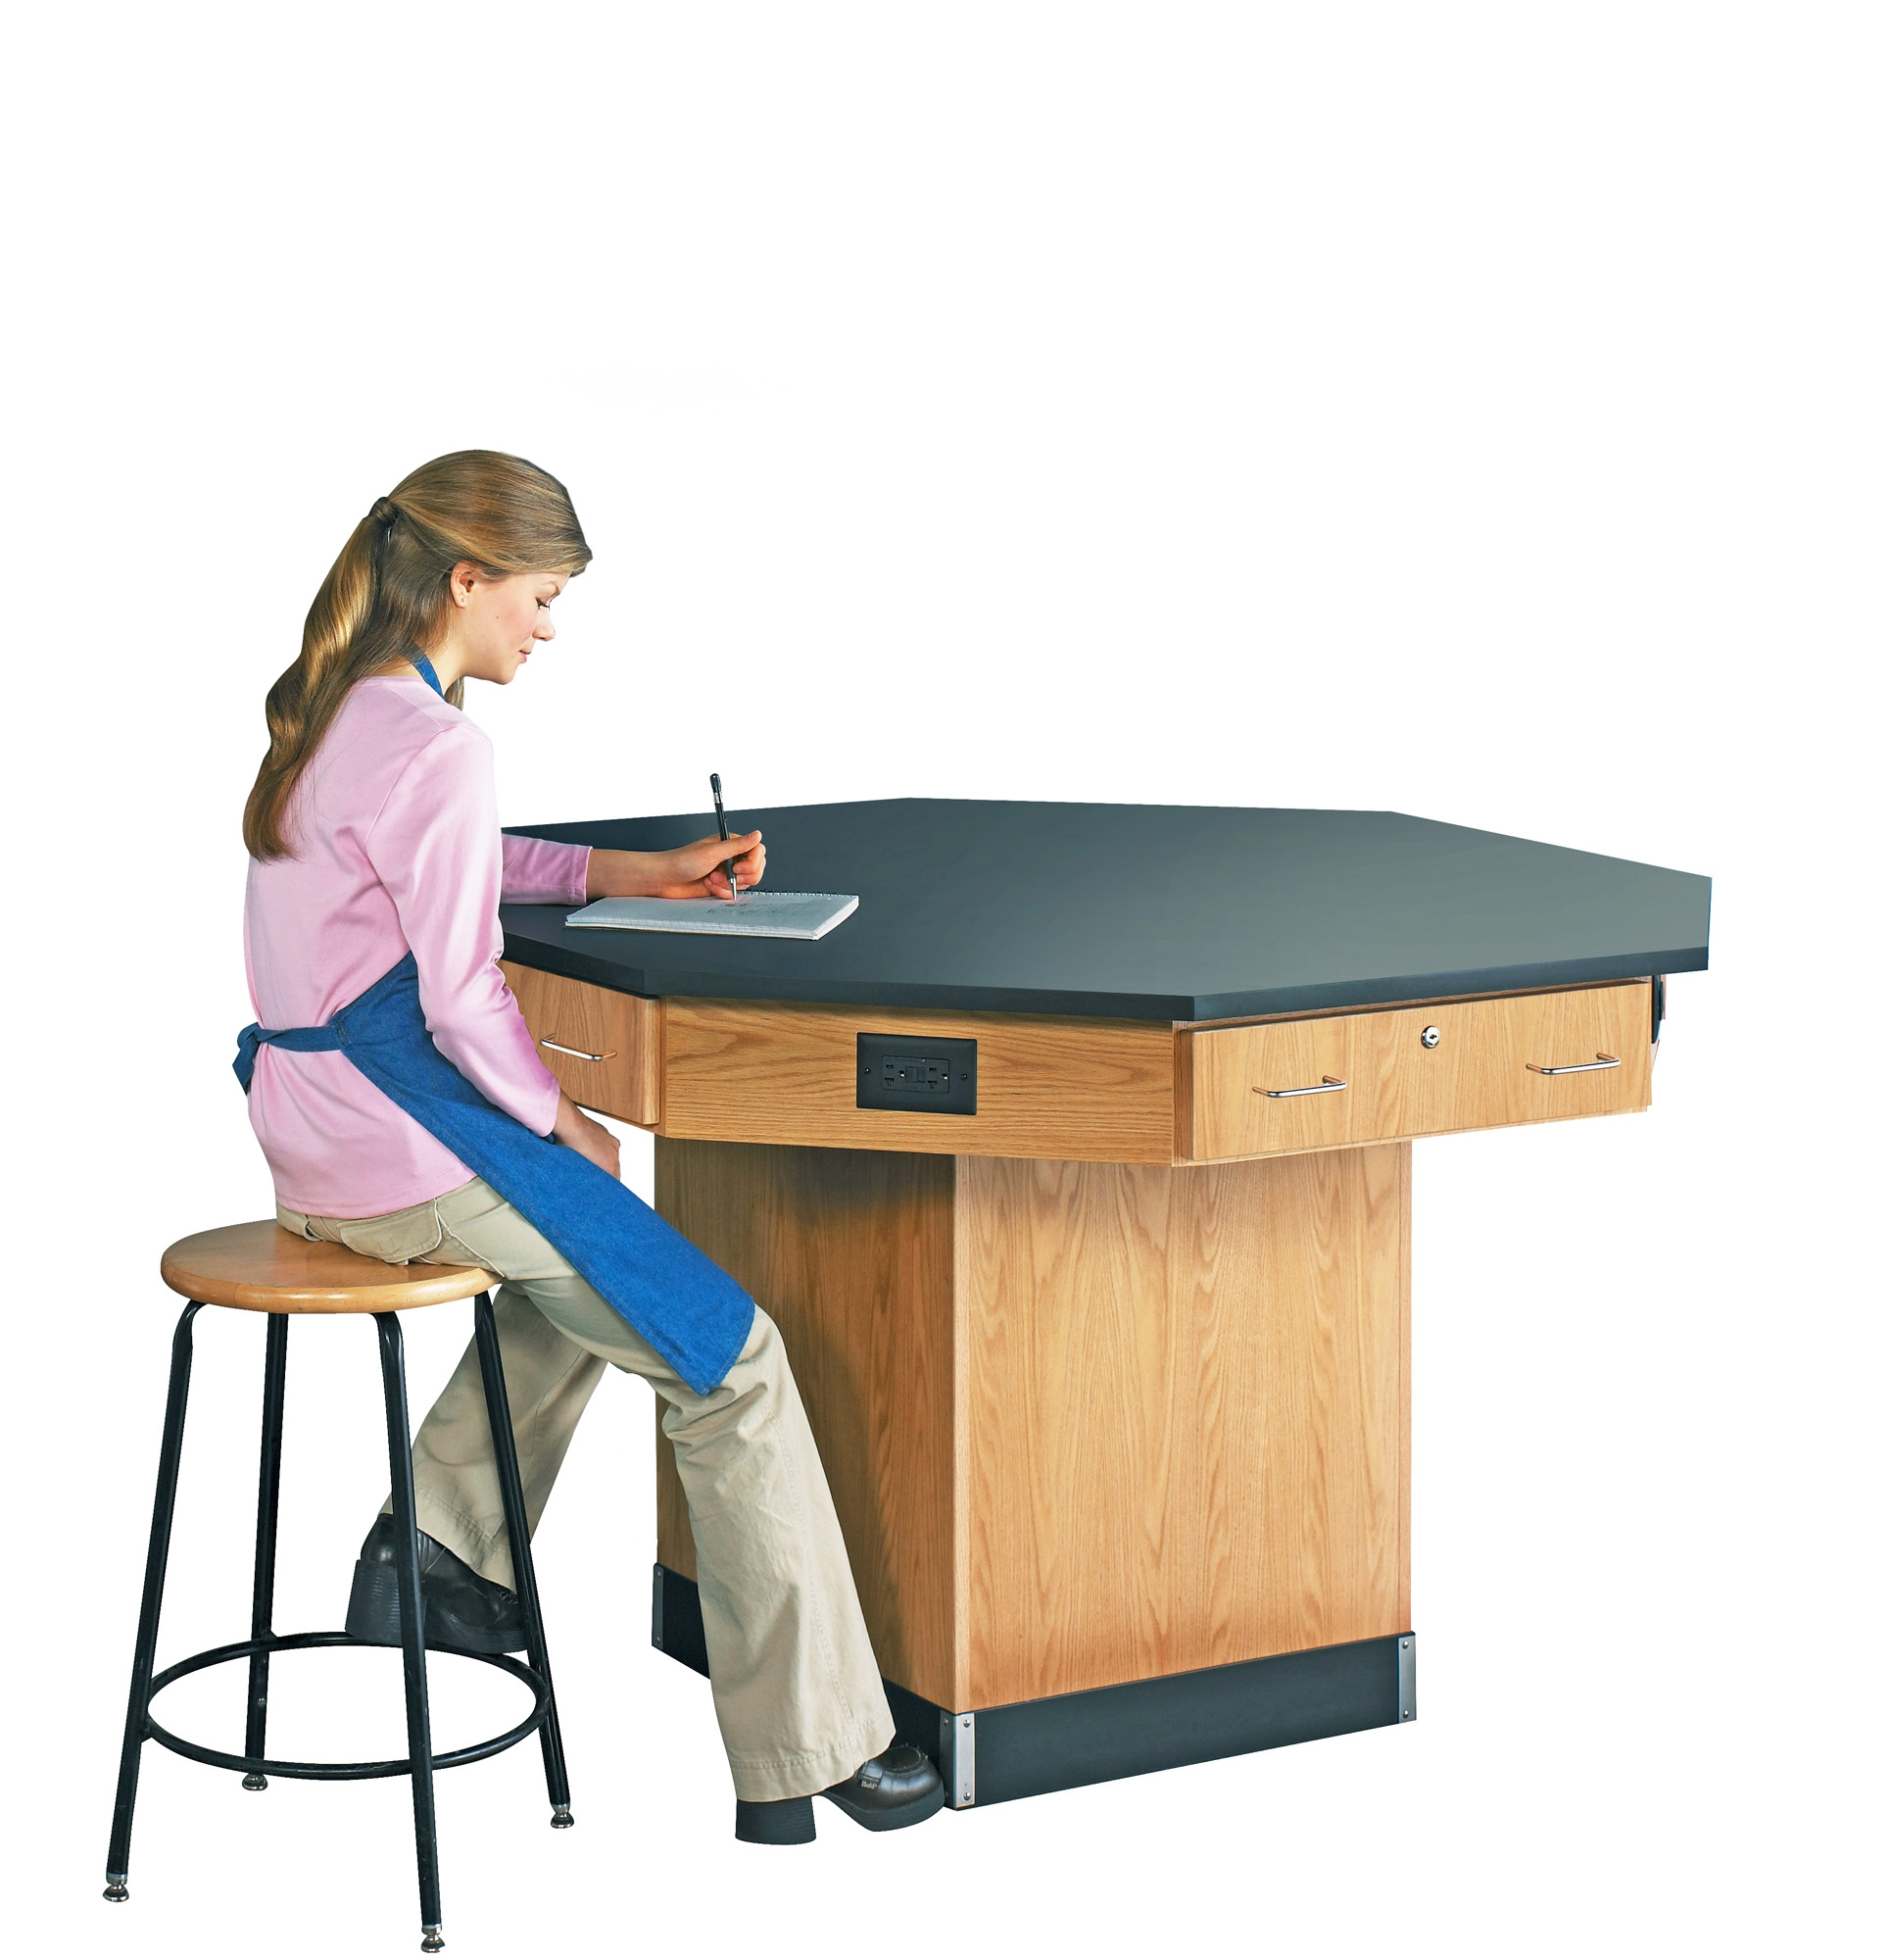 Diversified Woodcrafts Octagon Workstation with Pedestal Base - Epoxy Top